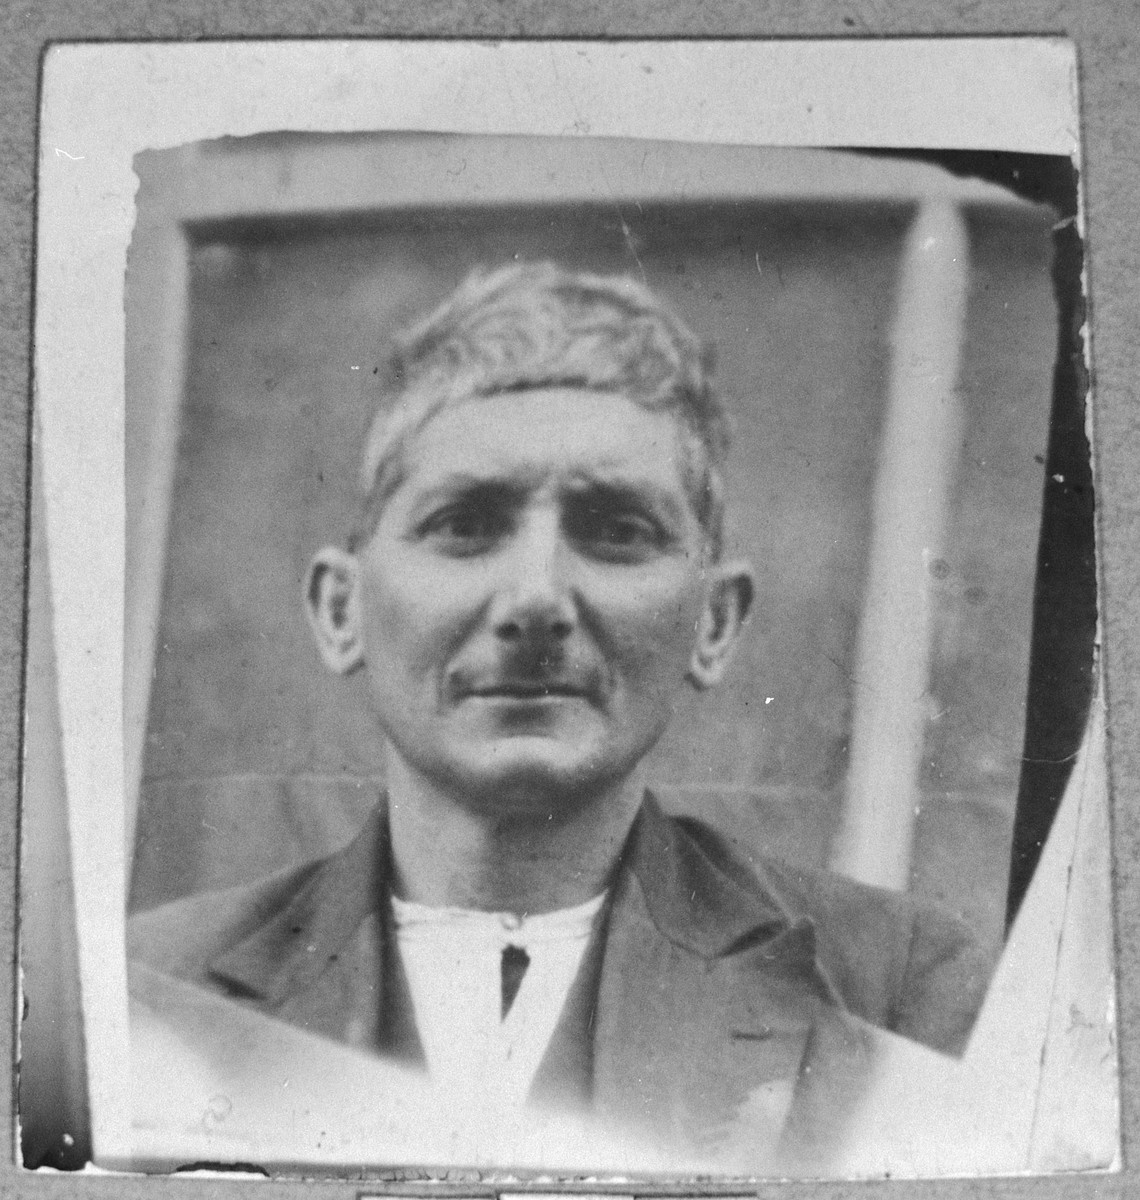 Portrait of Peris Pardo.  He was a fruitgrocer.  He lived at Zmayeva 33 in Bitola.